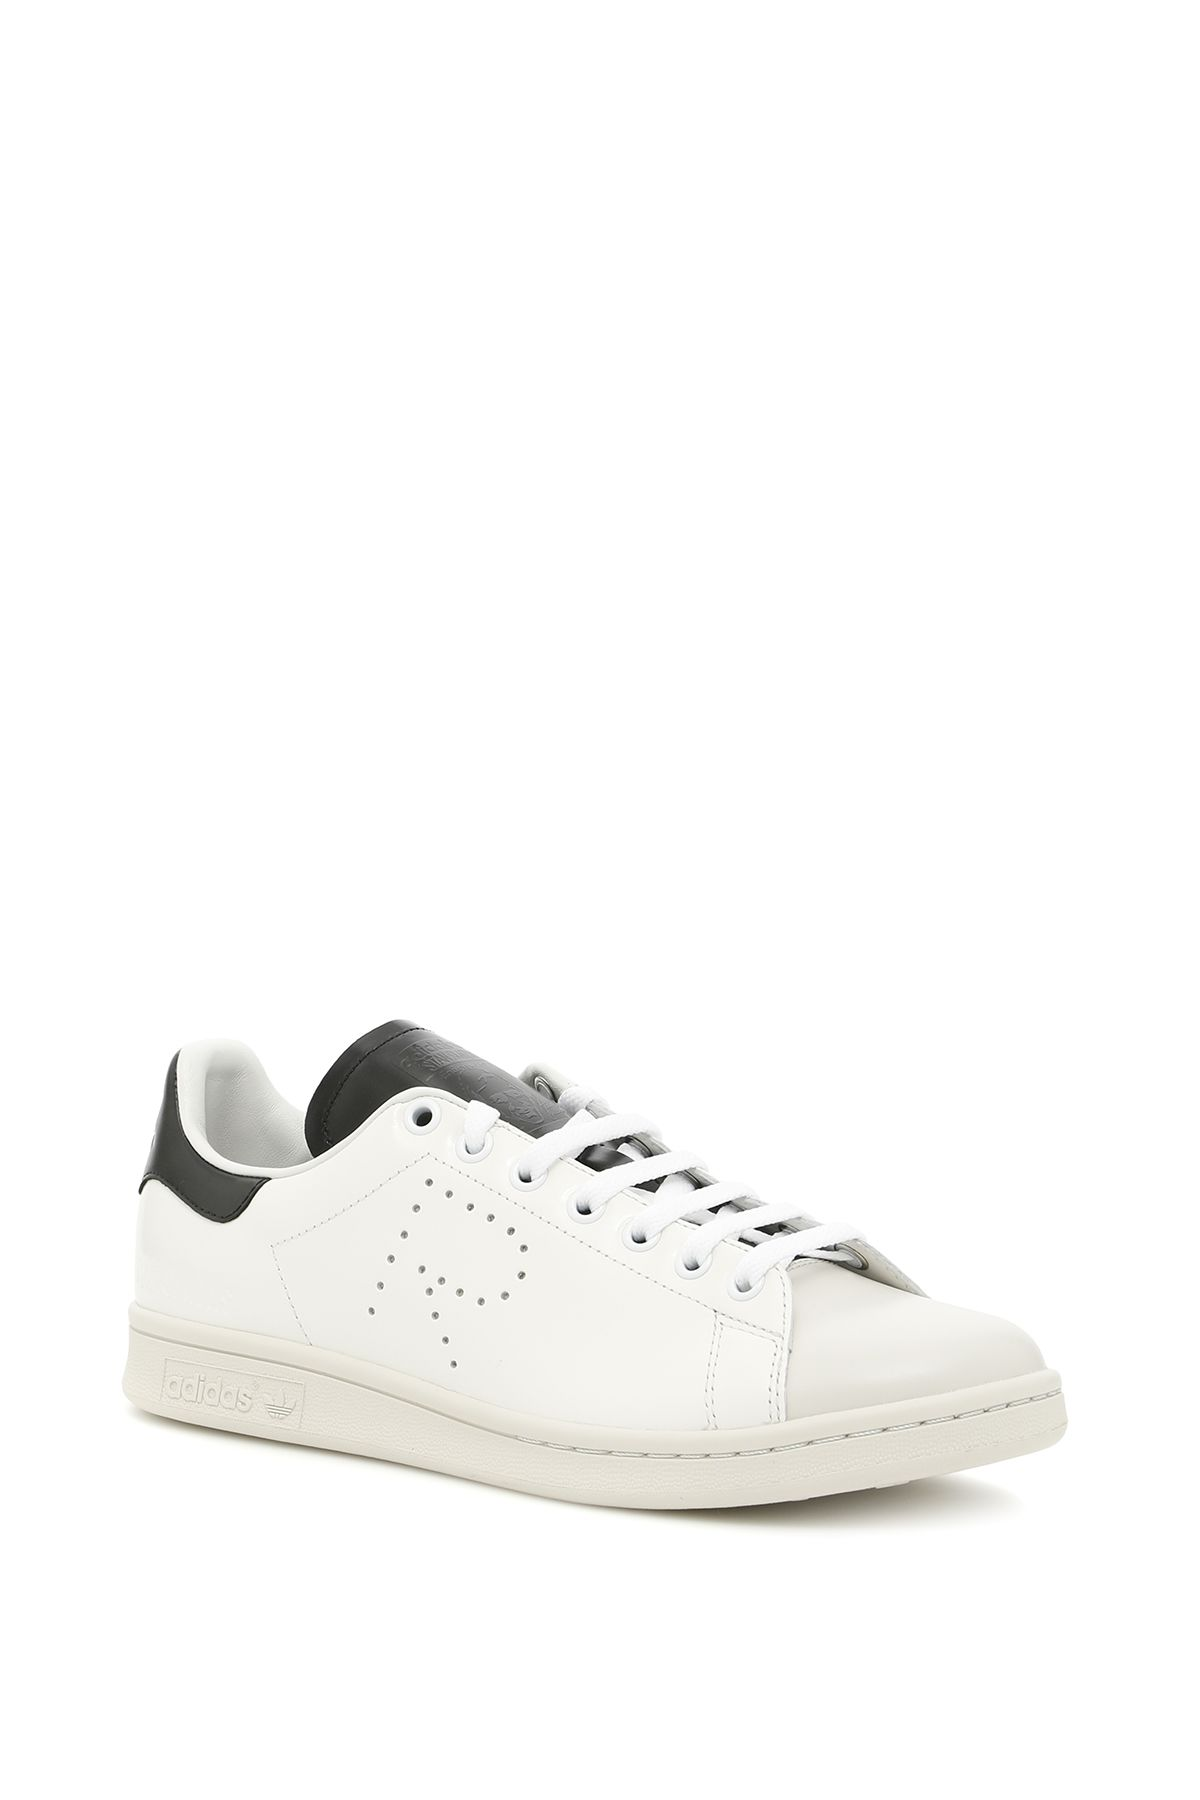 adidas by raf simons raf simons stan smith sneakers. Black Bedroom Furniture Sets. Home Design Ideas